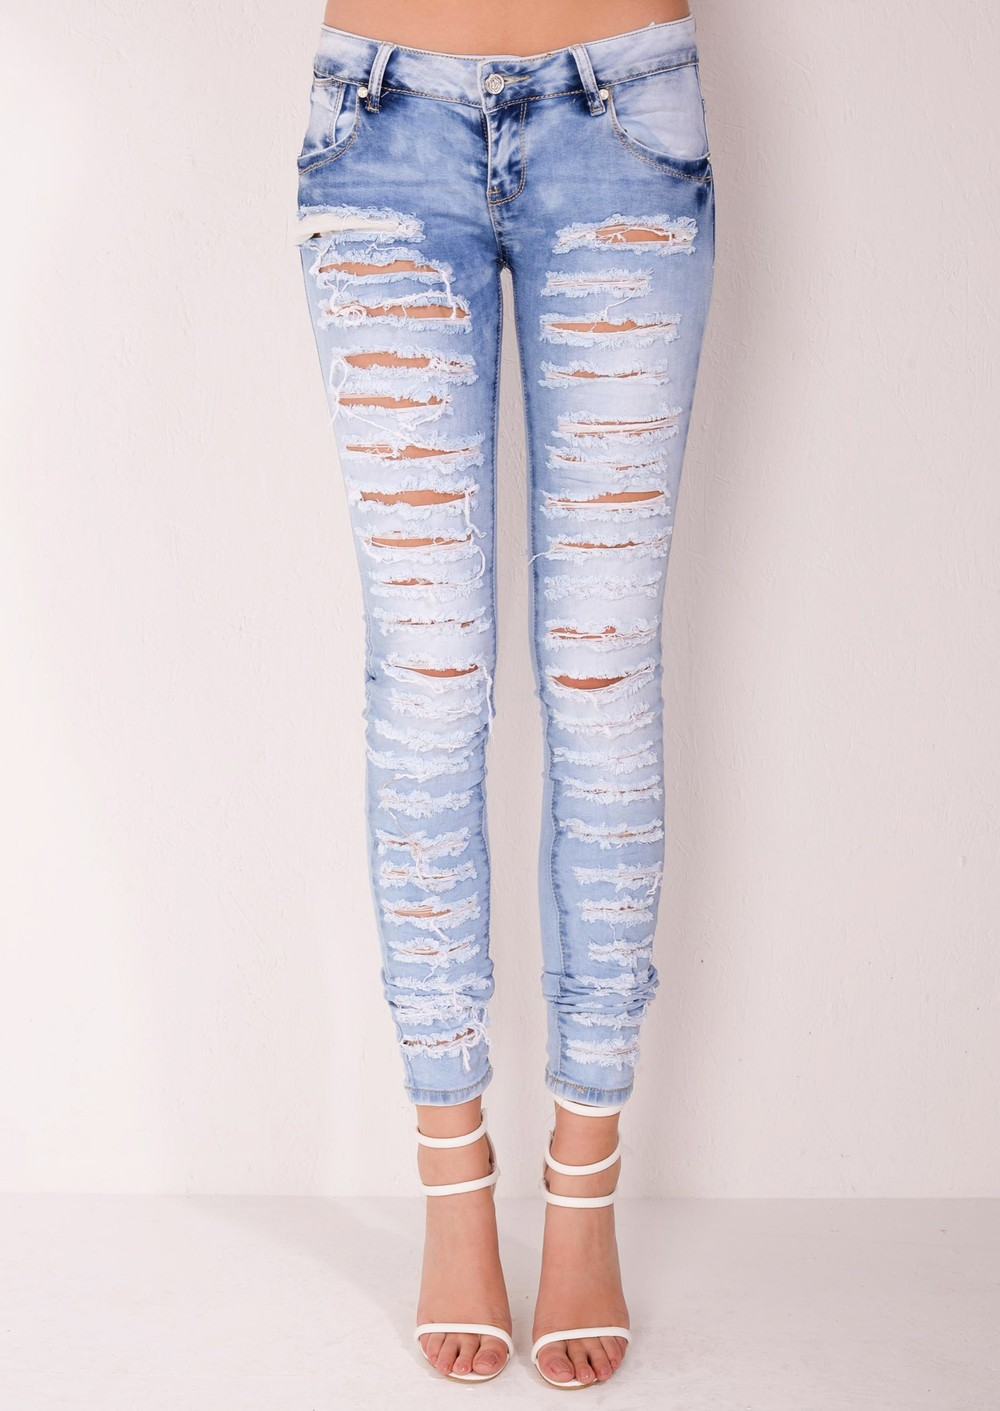 Where Can I Get Ripped Jeans